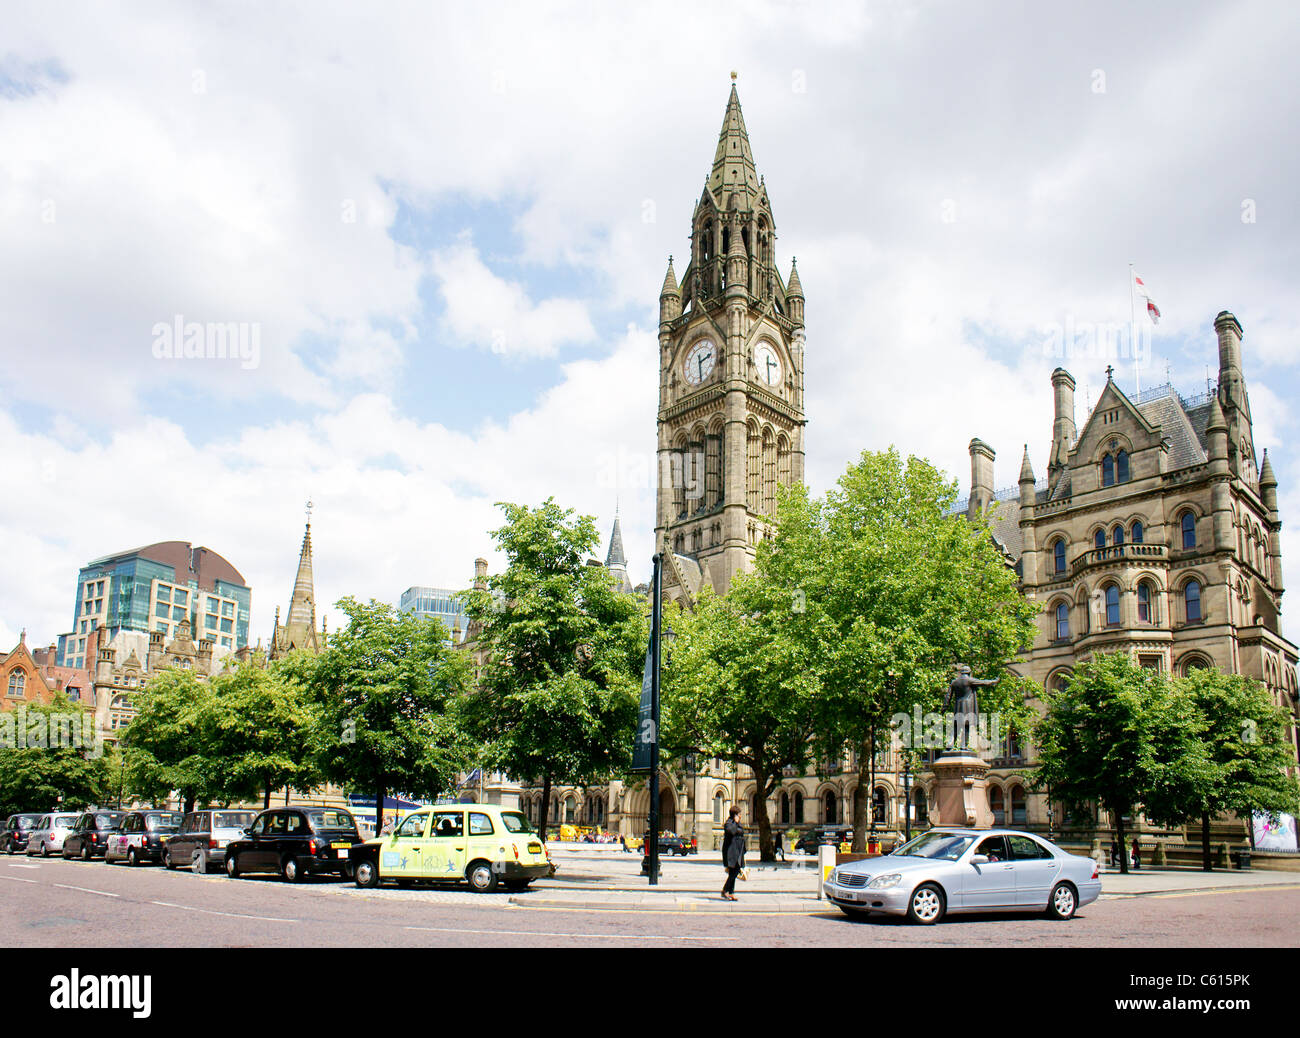 Manchester Town Hall, Manchester, England. The City Council's Victorian gothic style city hall seen across Albert - Stock Image